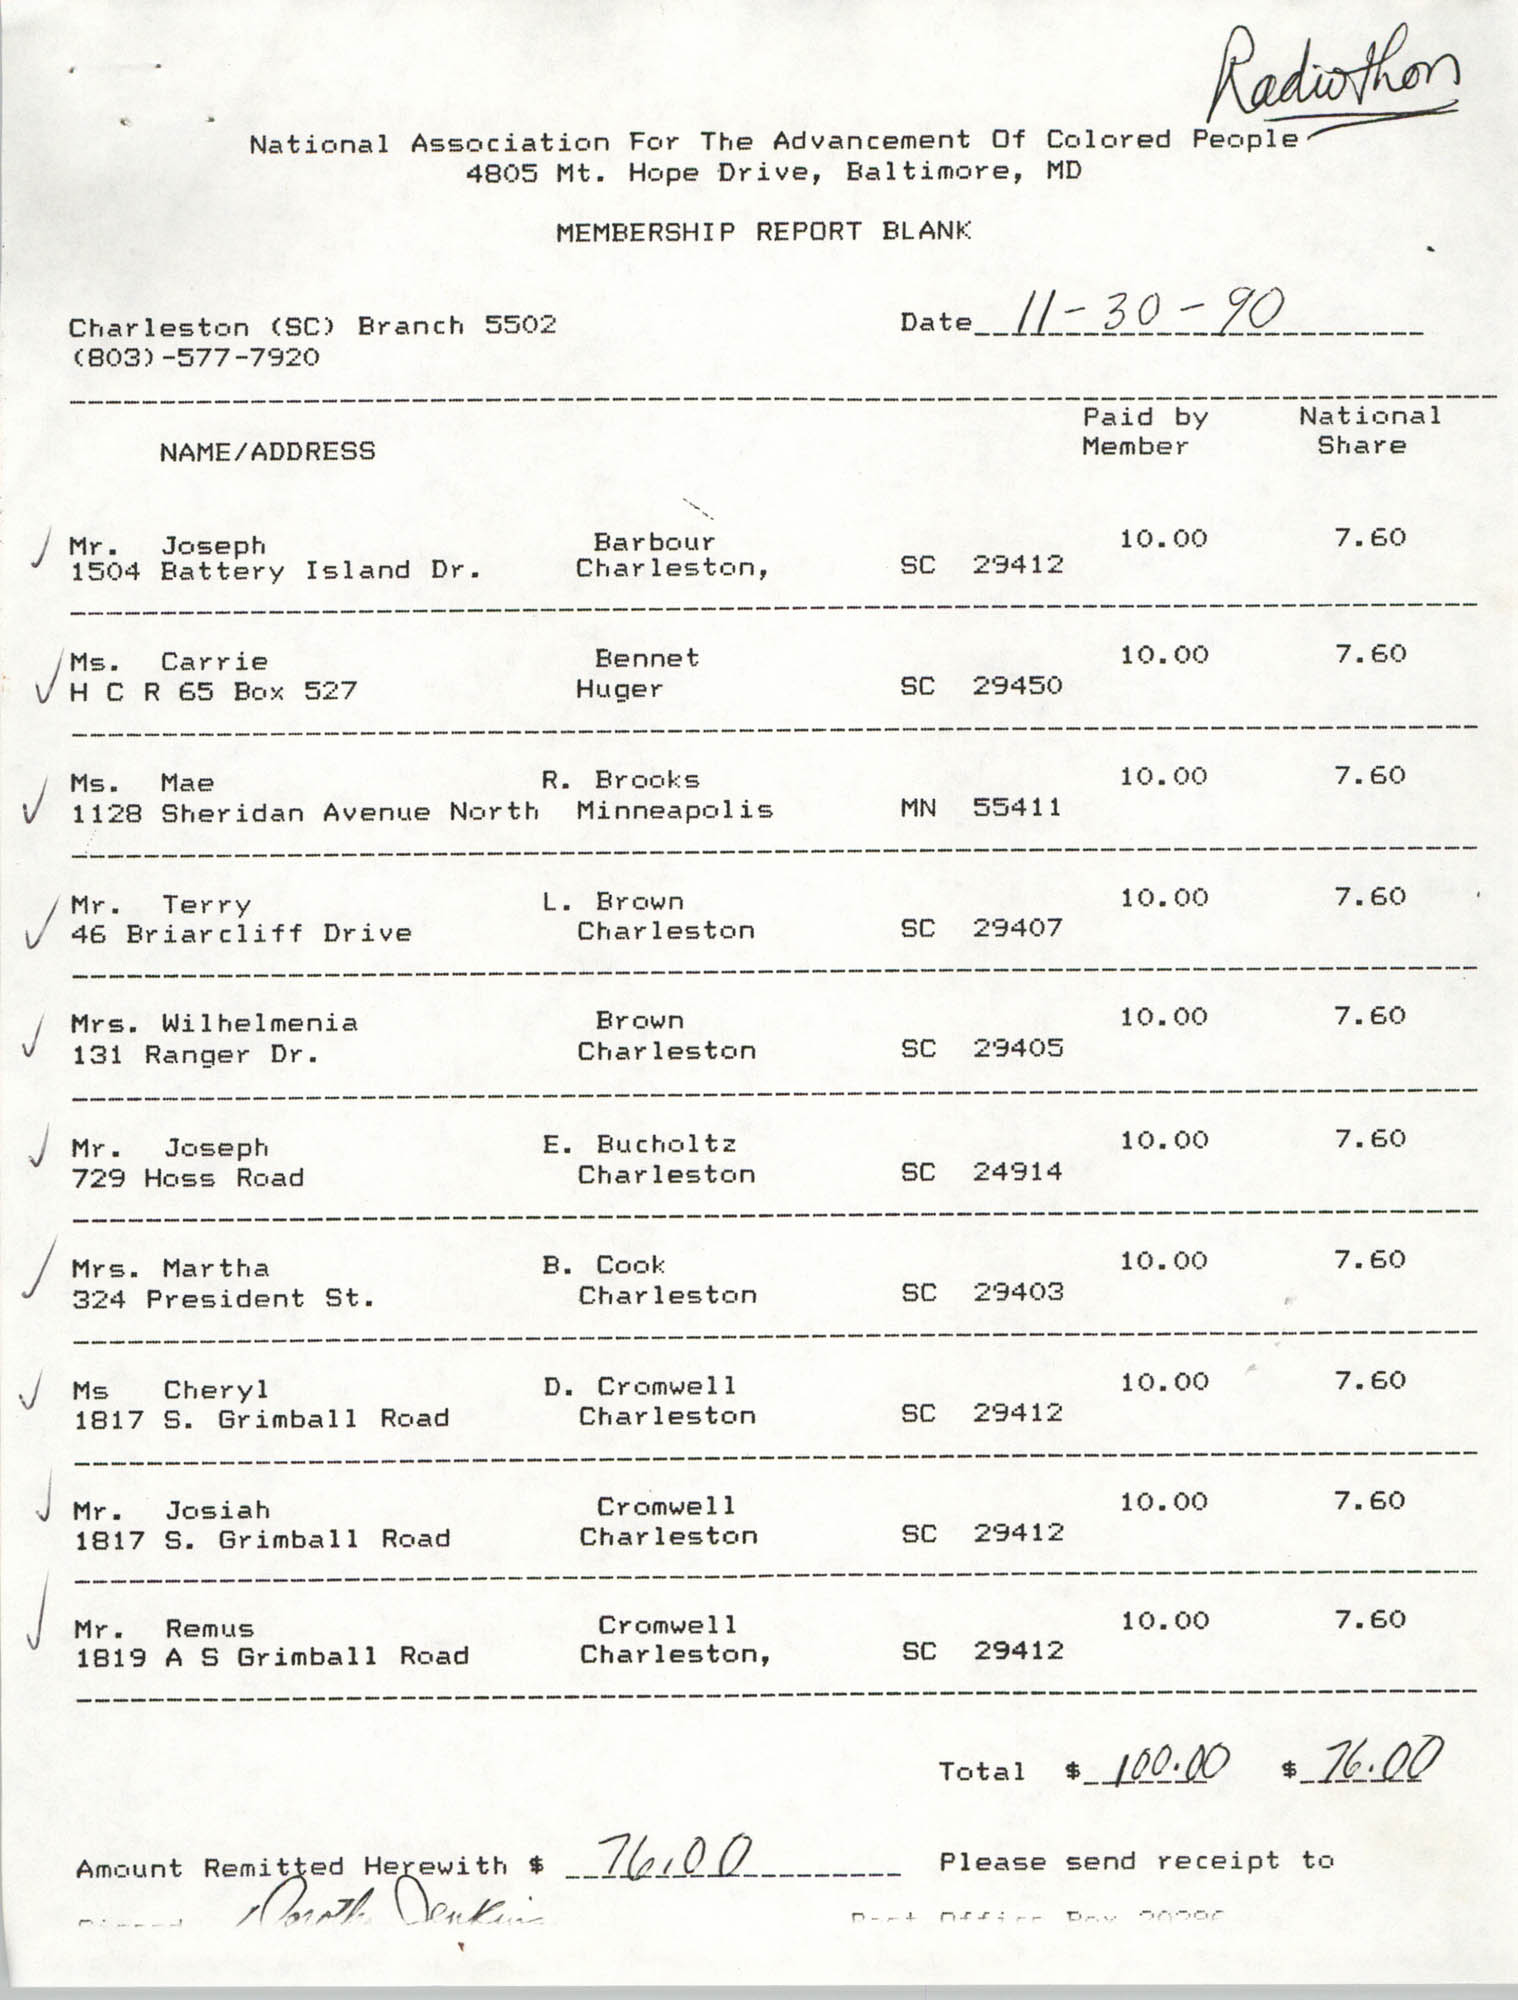 Membership Report Blank, Charleston Branch of the NAACP, Dorothy Jenkins, November 30, 1990